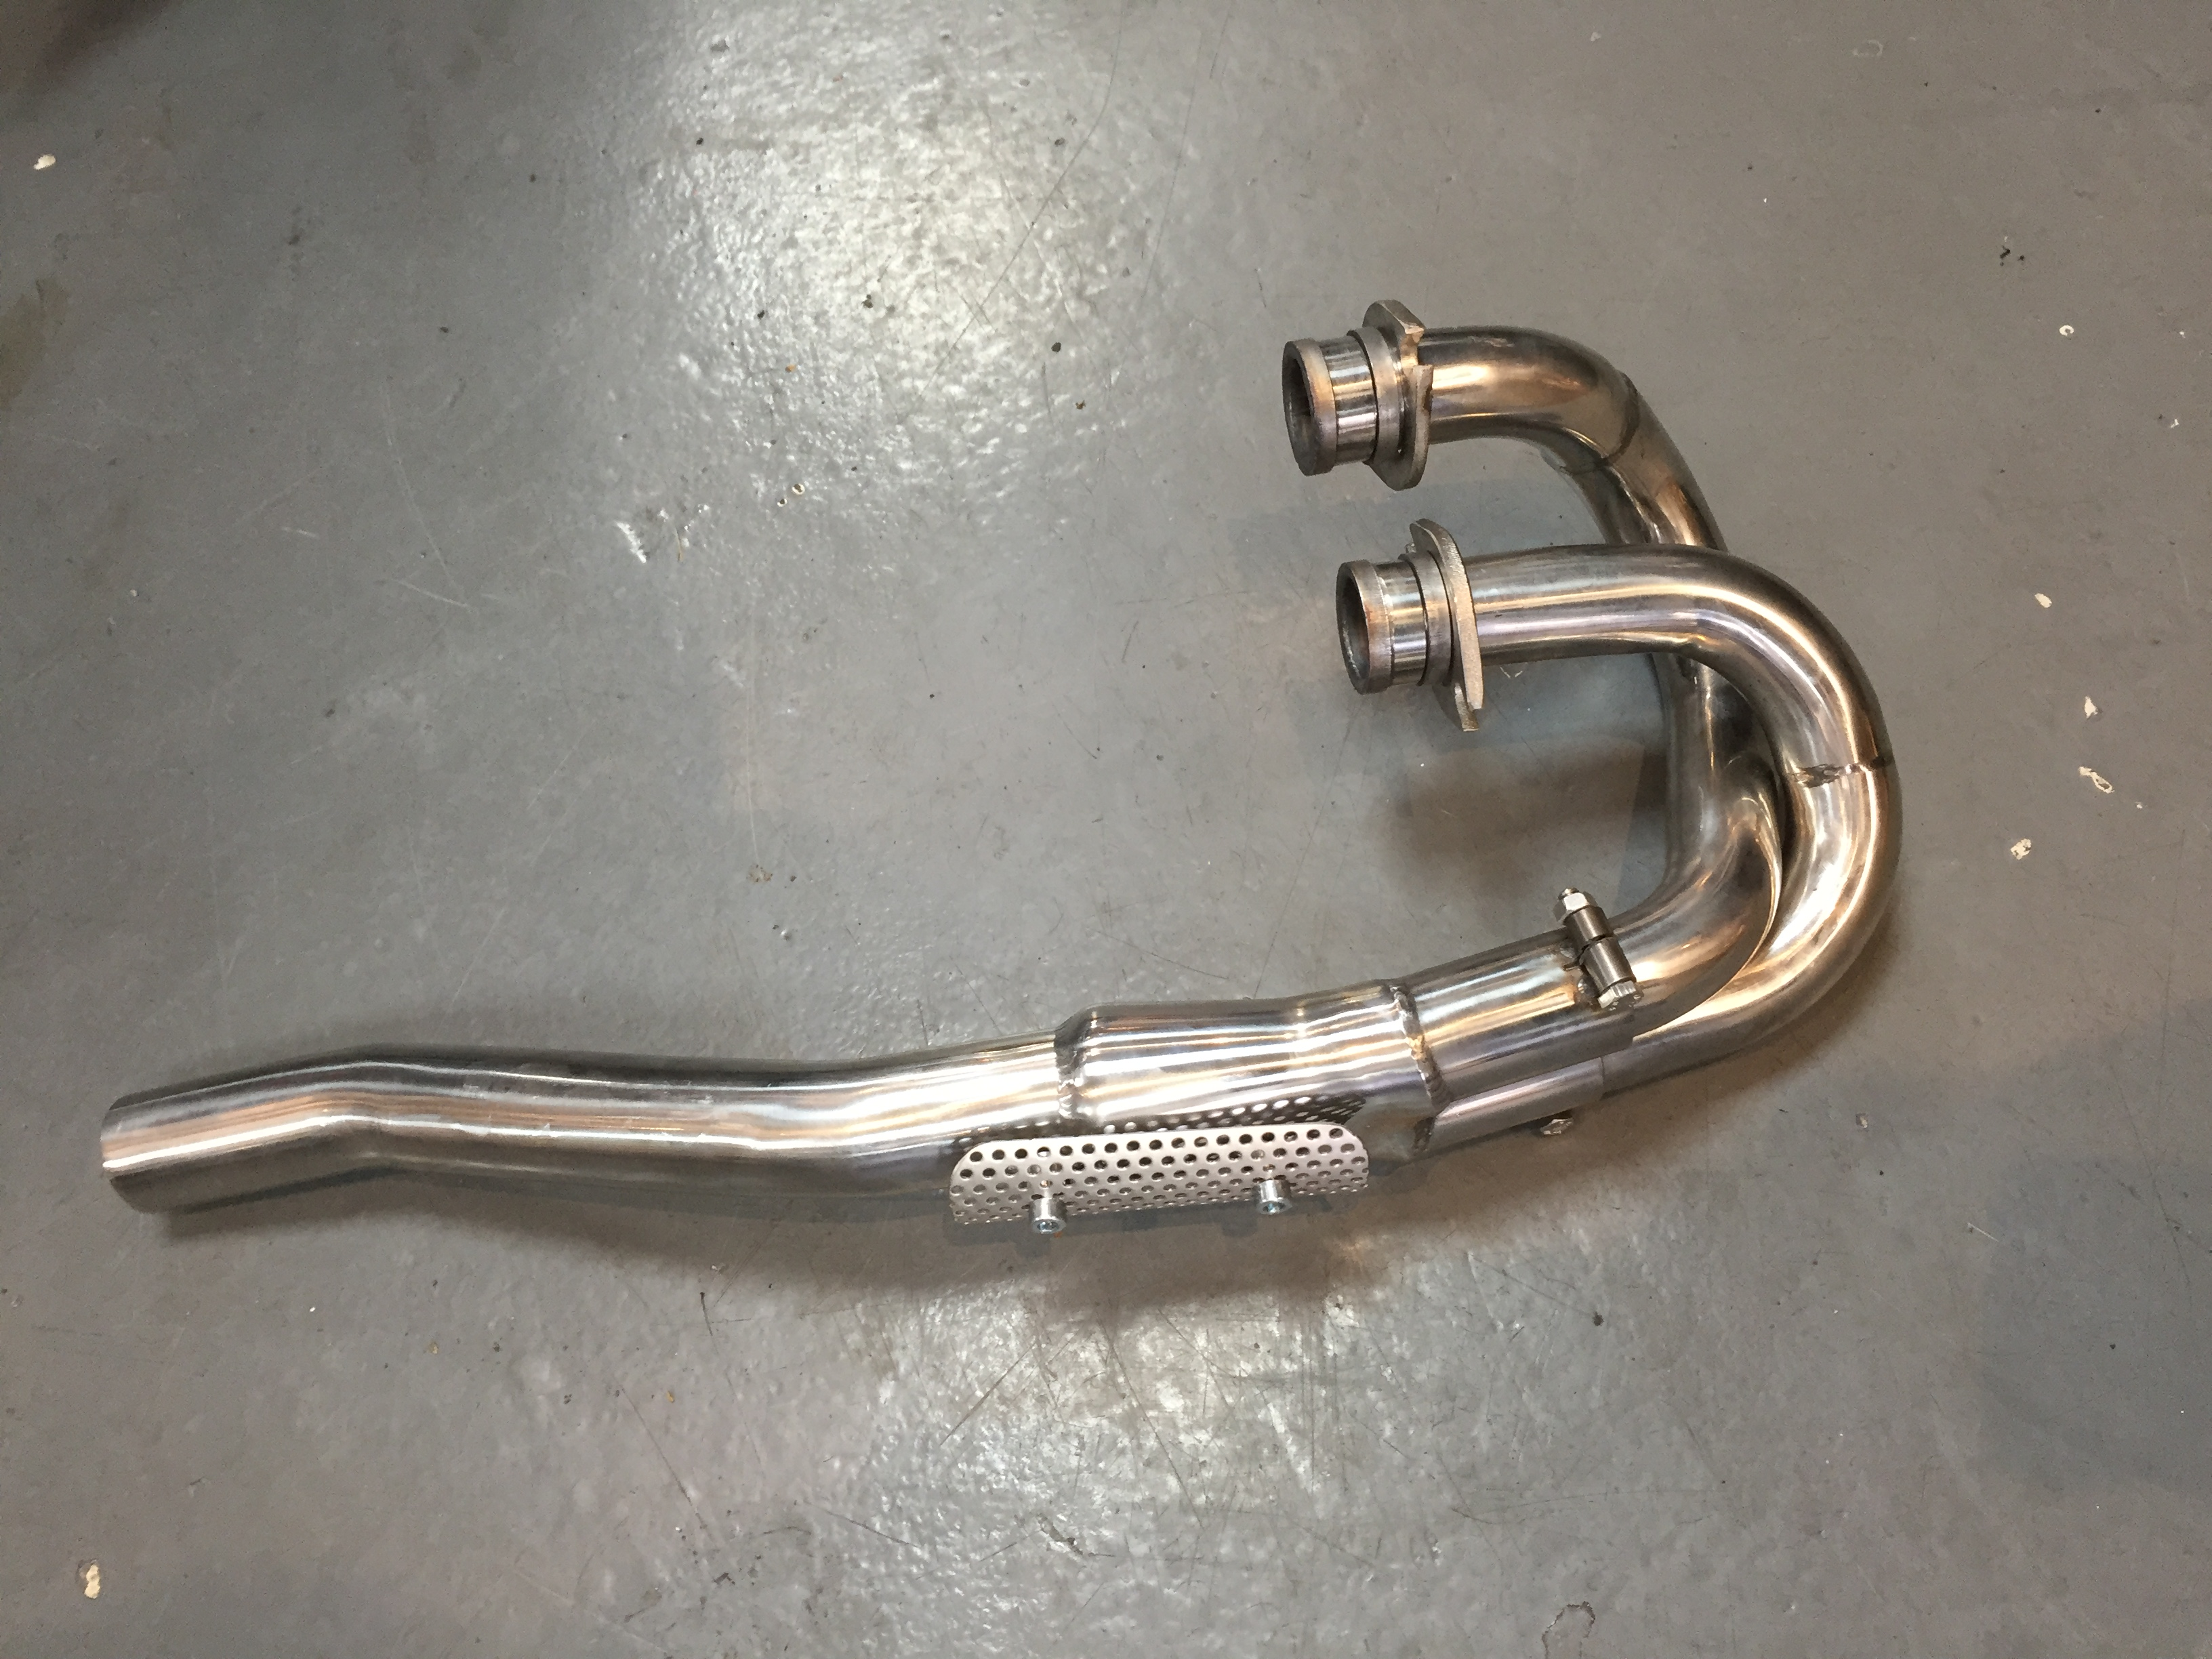 * NEW* HONDA XLX250R (MD08) 1983- PREDATOR FRONT EXHAUST PIPEWORK S/STEEL *NEW*